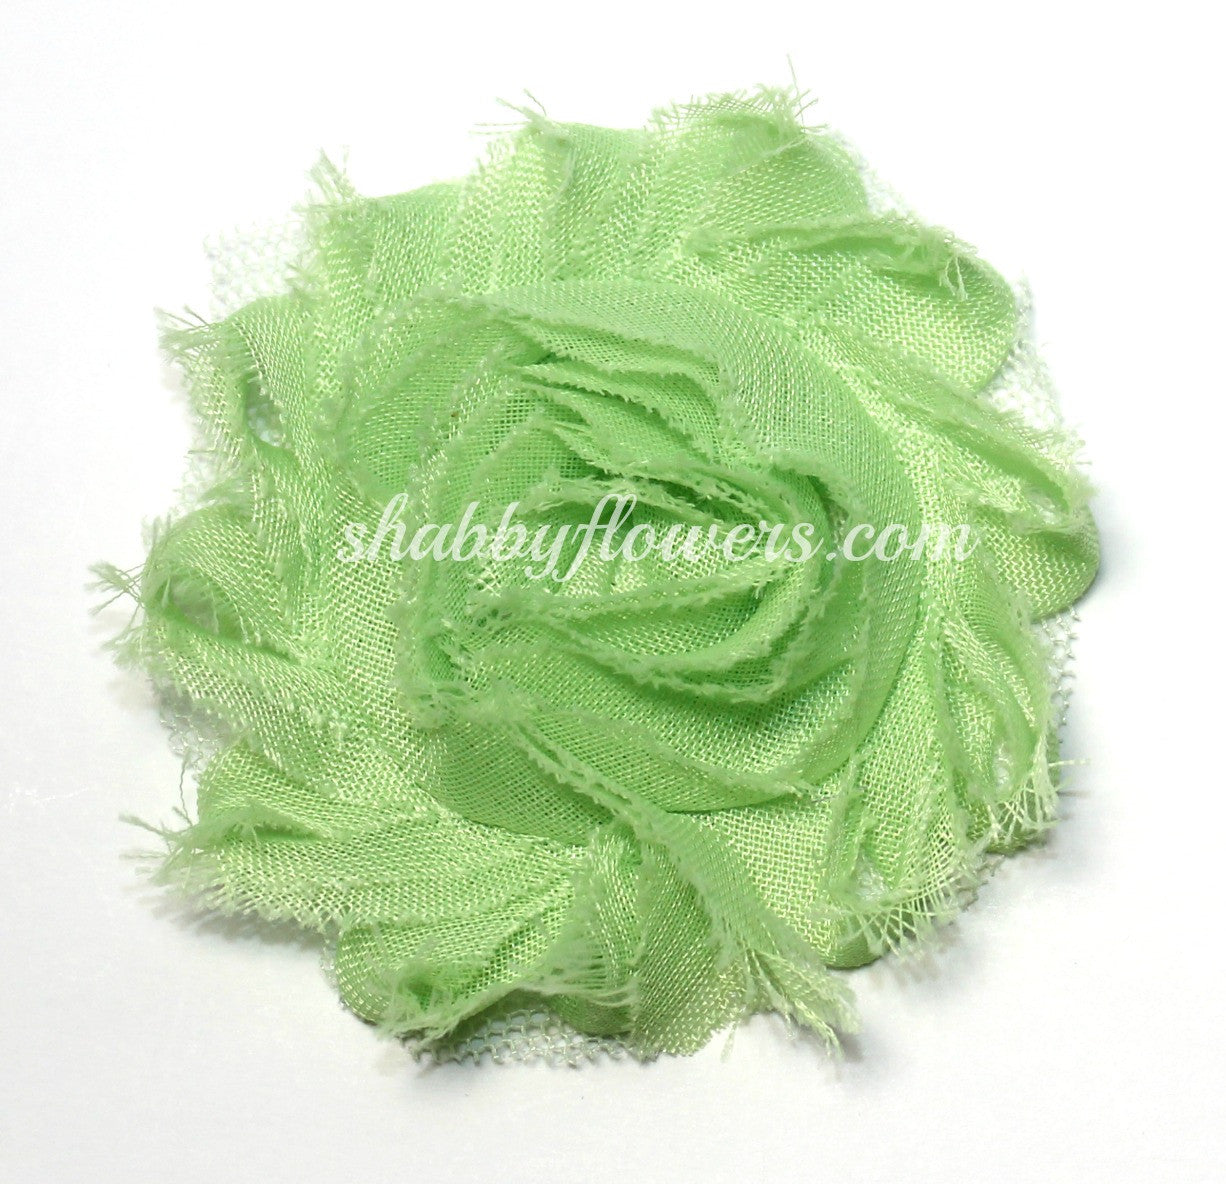 Shabby Chiffon Flower - Honeydew - shabbyflowers.com